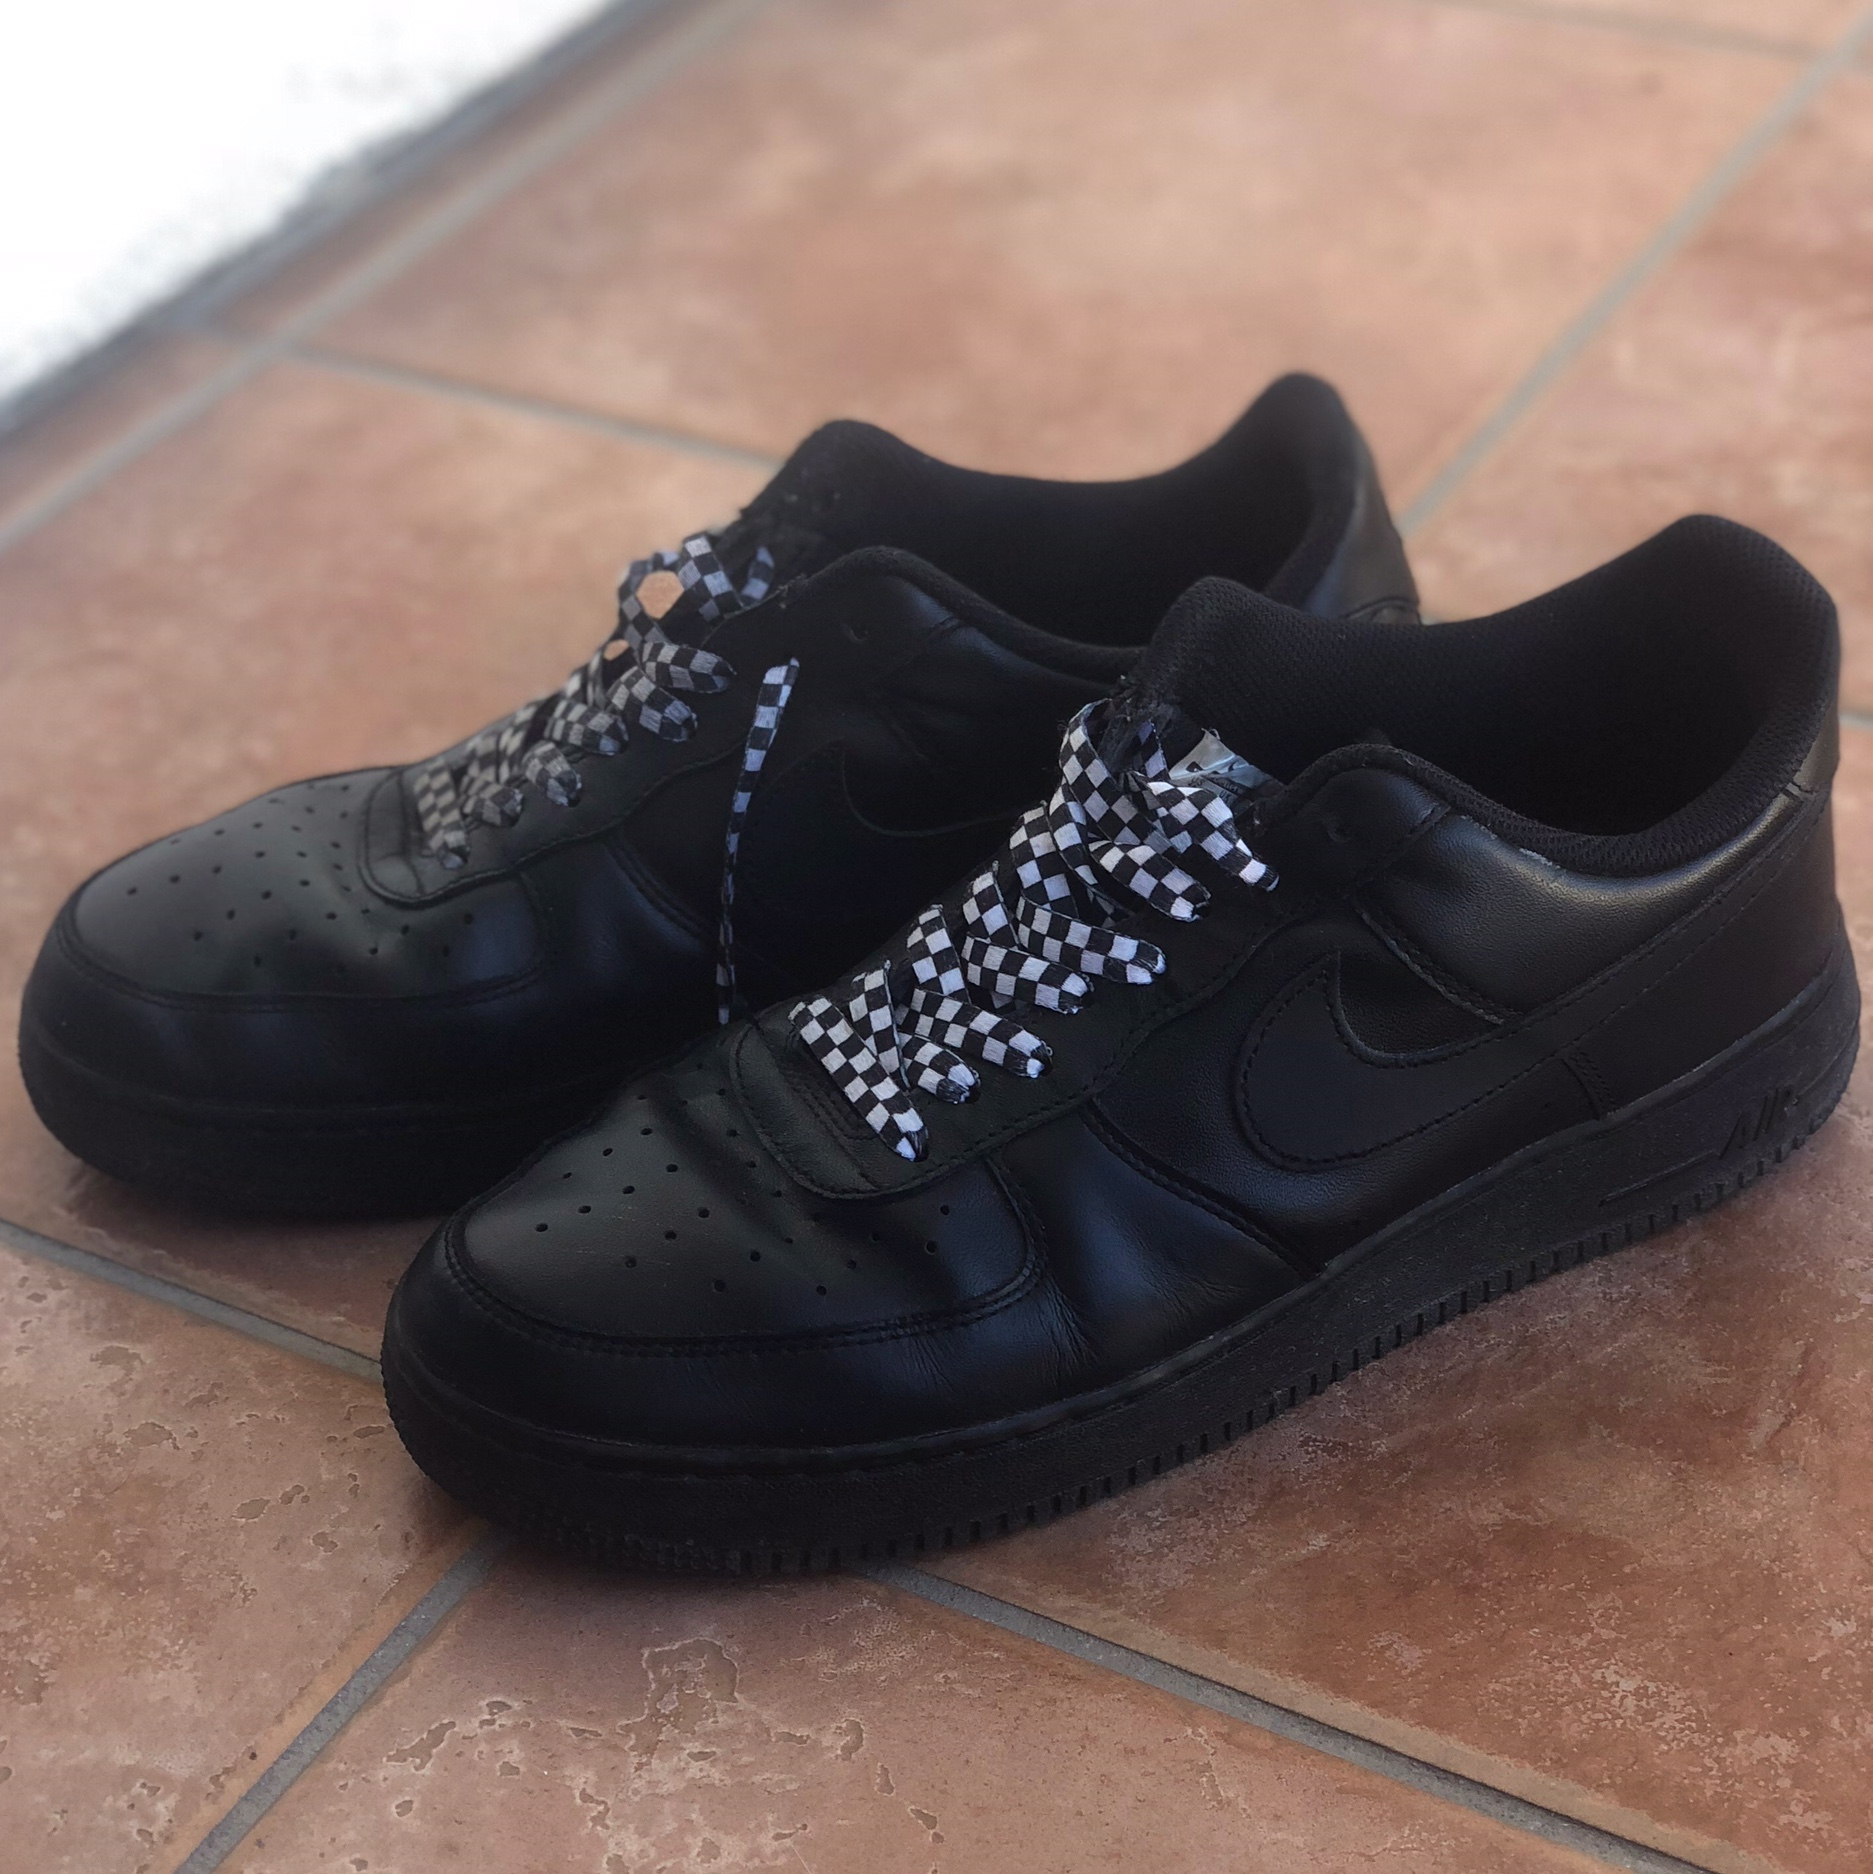 Black nike Air Force 1 Ones, with